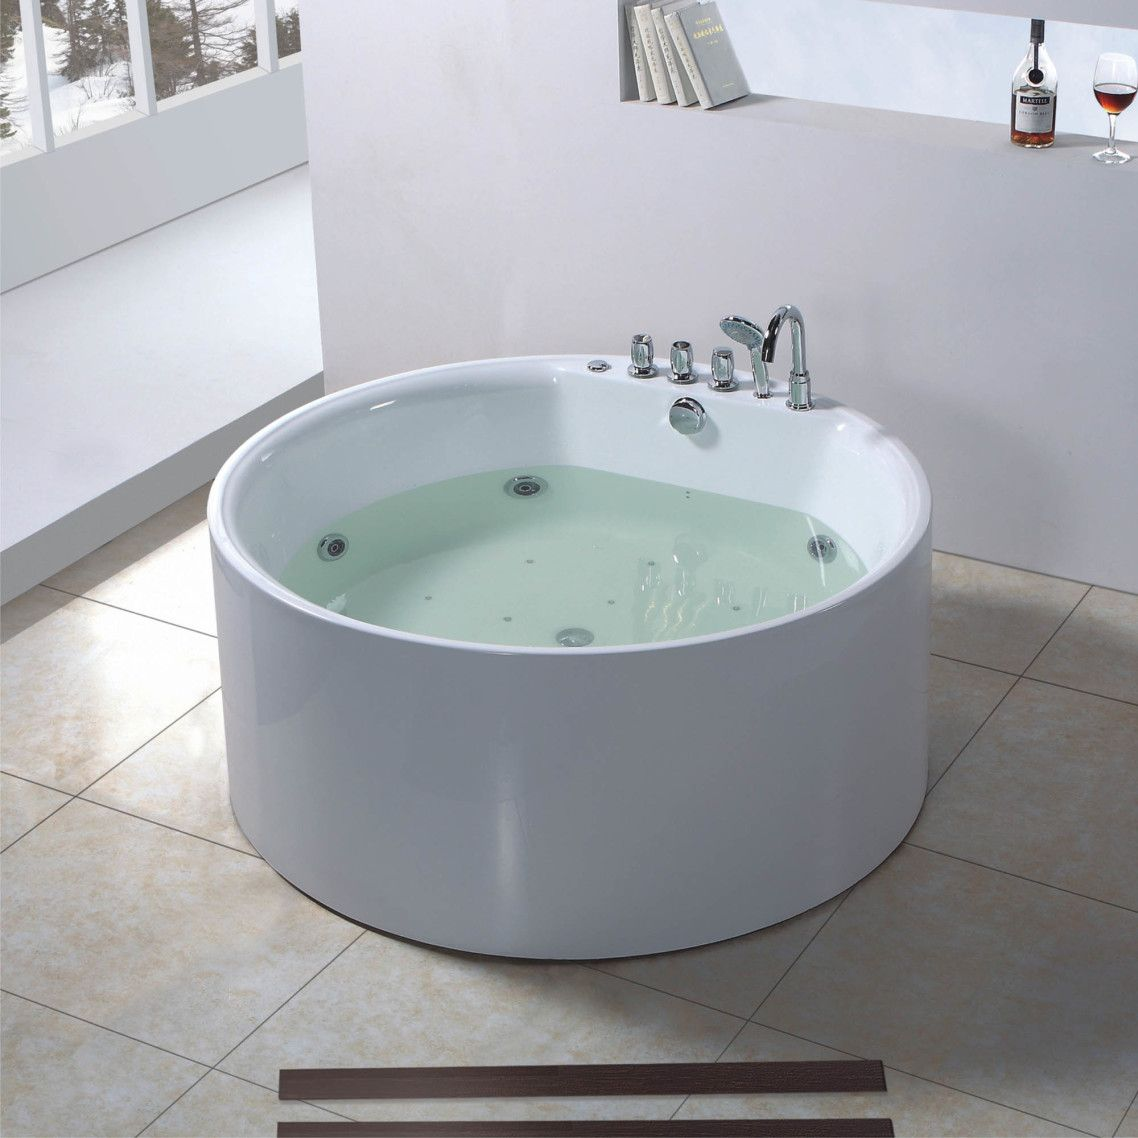 Baths For Sale Cool Round White Walk In Baths Jacuzzi